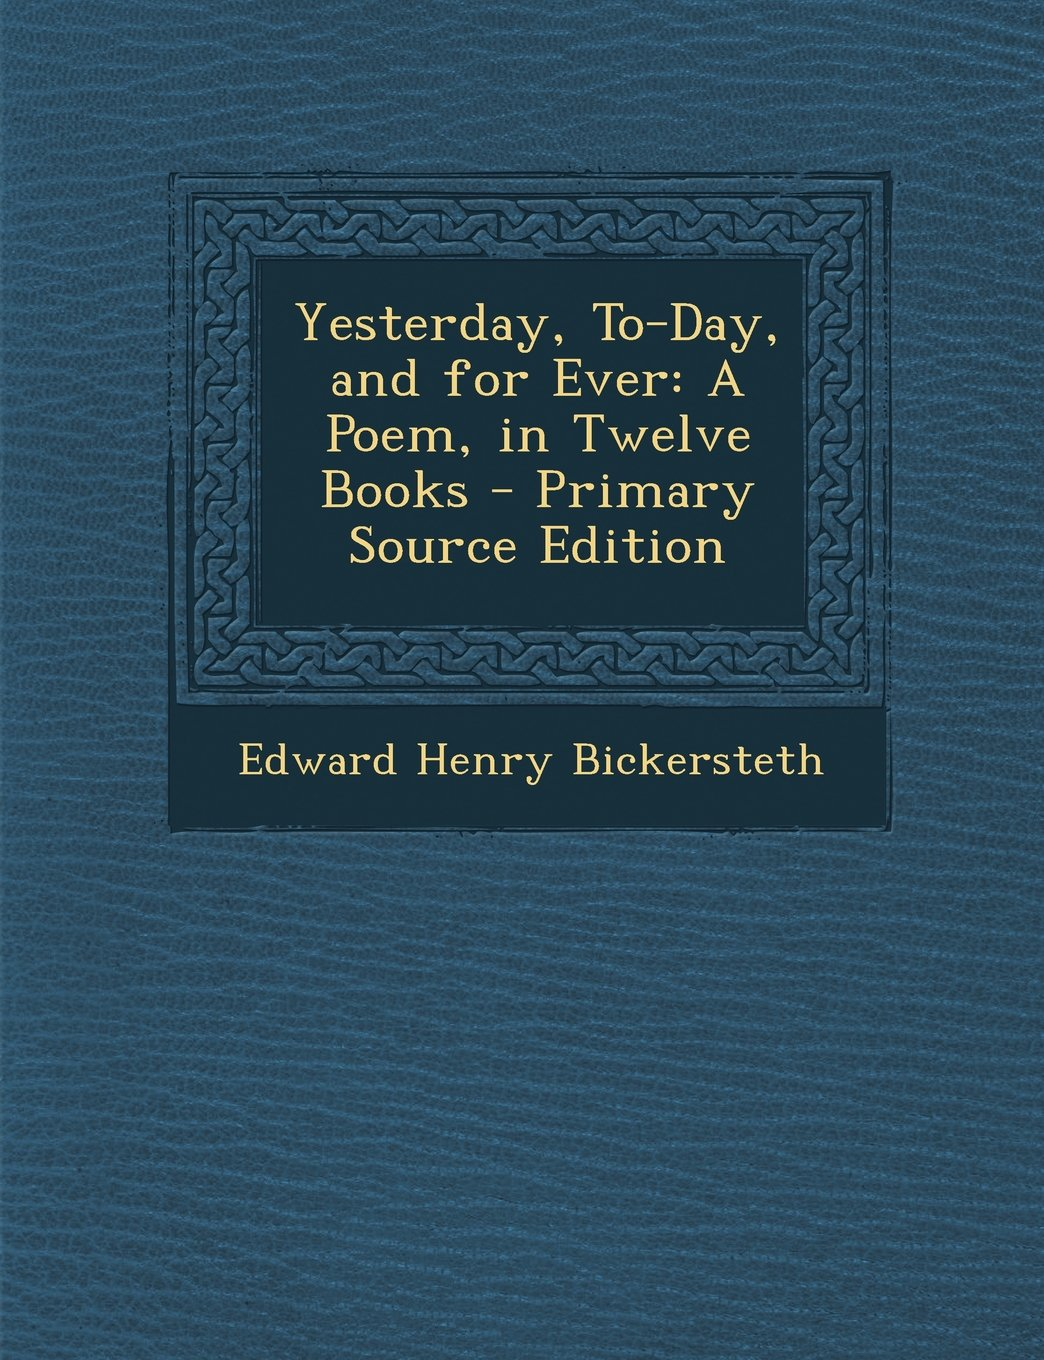 Yesterday, To-Day, and for Ever: A Poem, in Twelve Books ebook